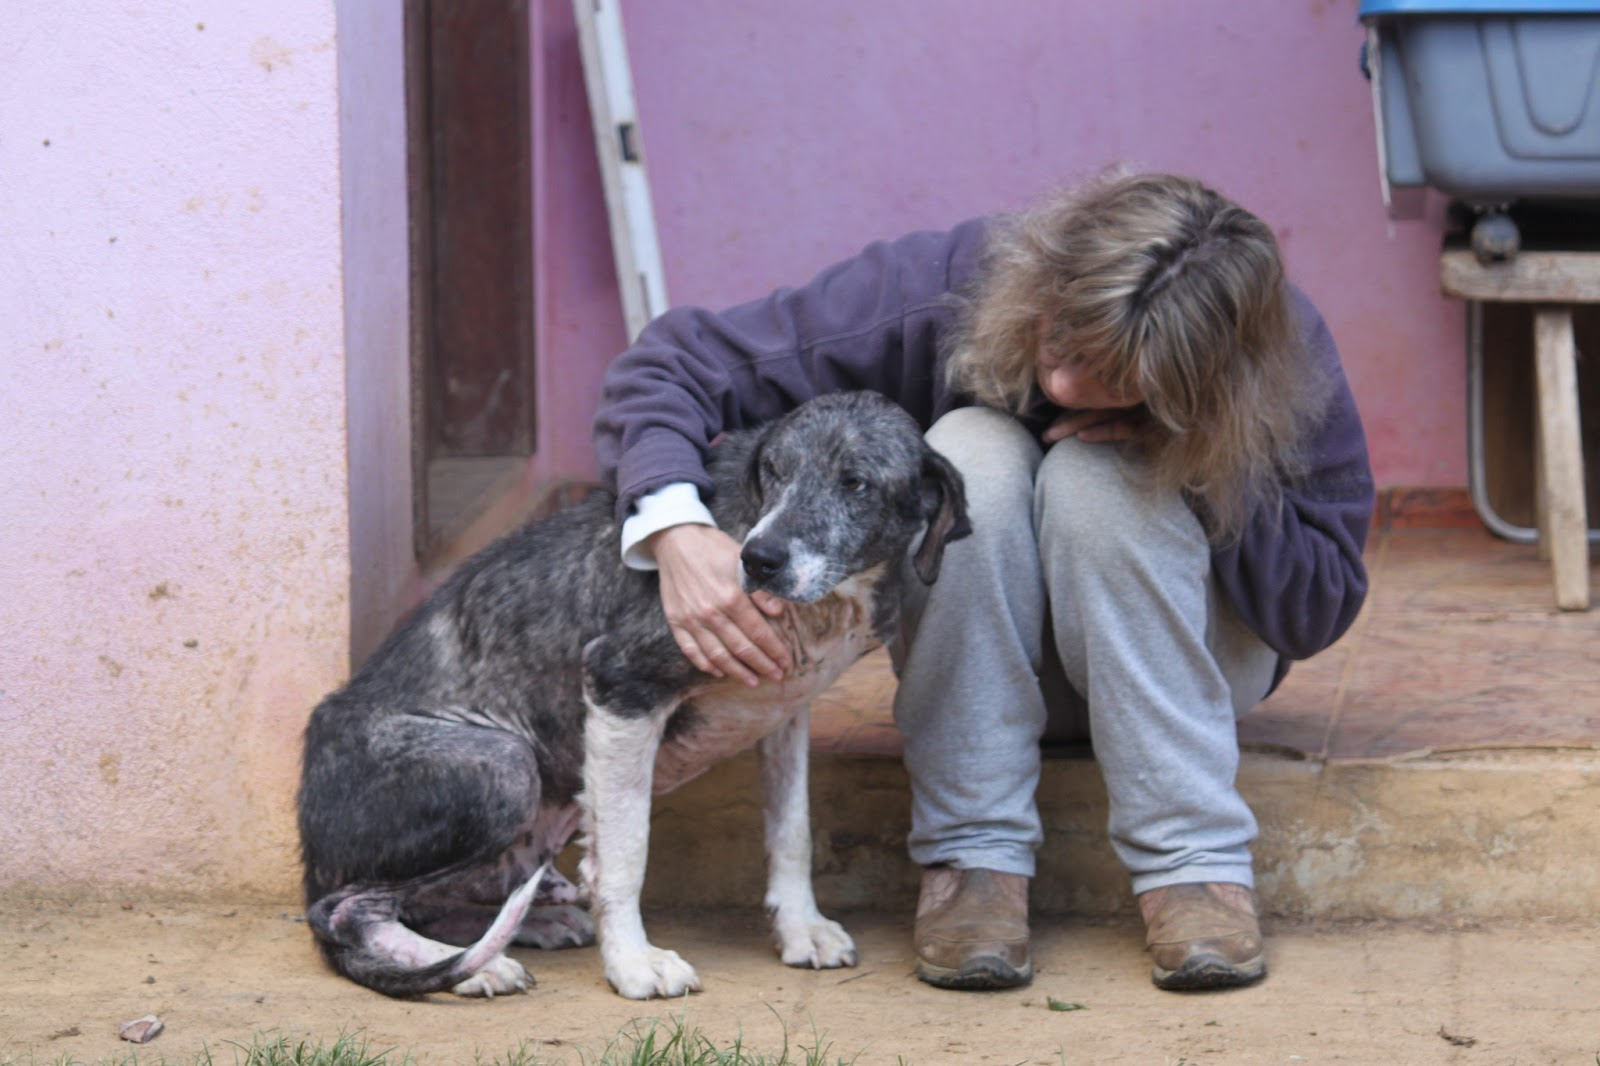 What are some well-known animal rescue sanctuaries?